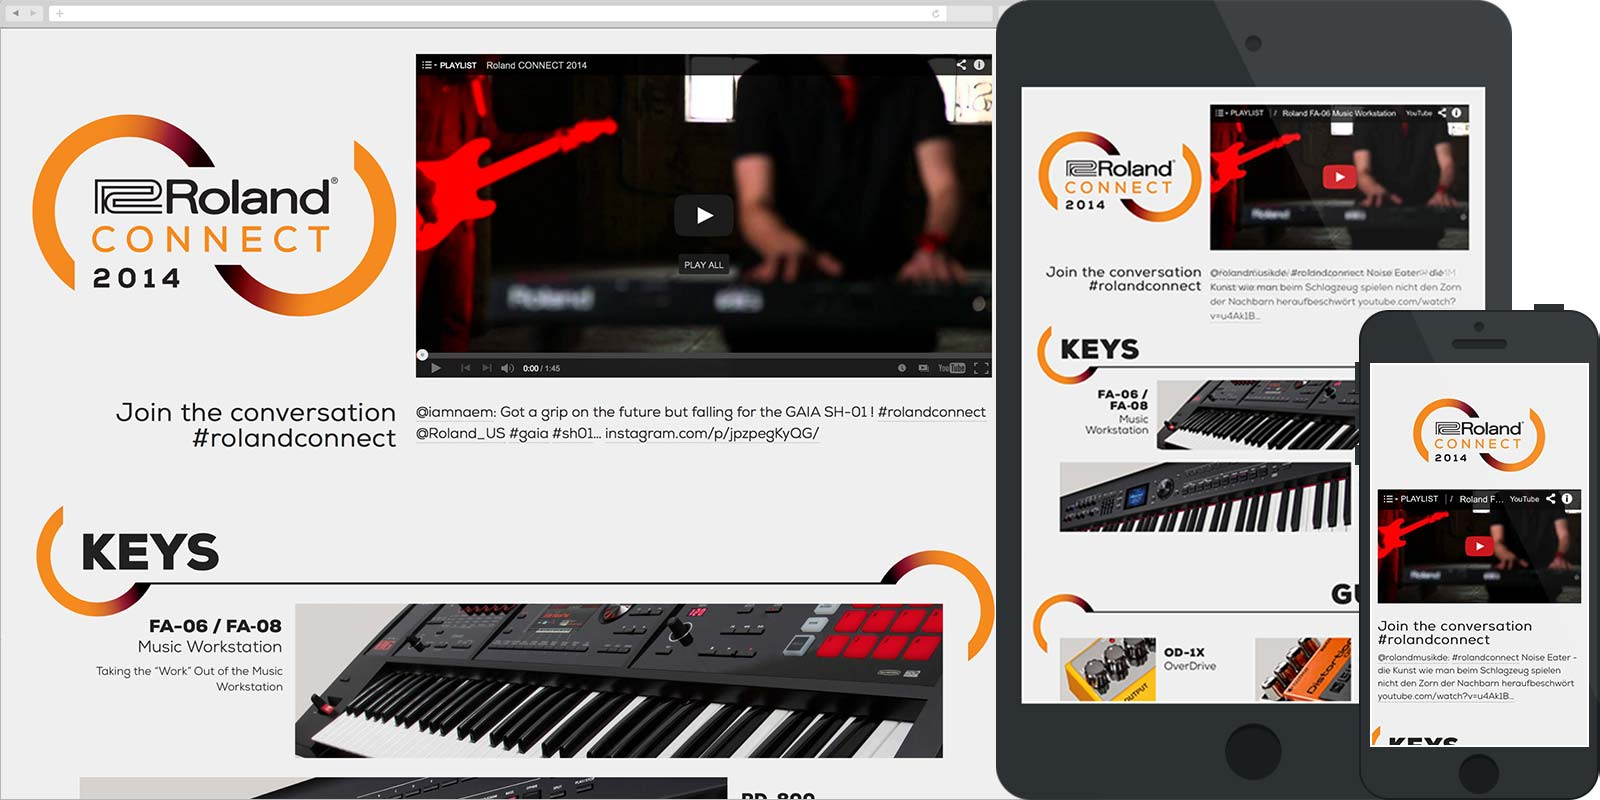 Screen capture of the Roland Connect 2014 website in desktop, tablet, and mobile views